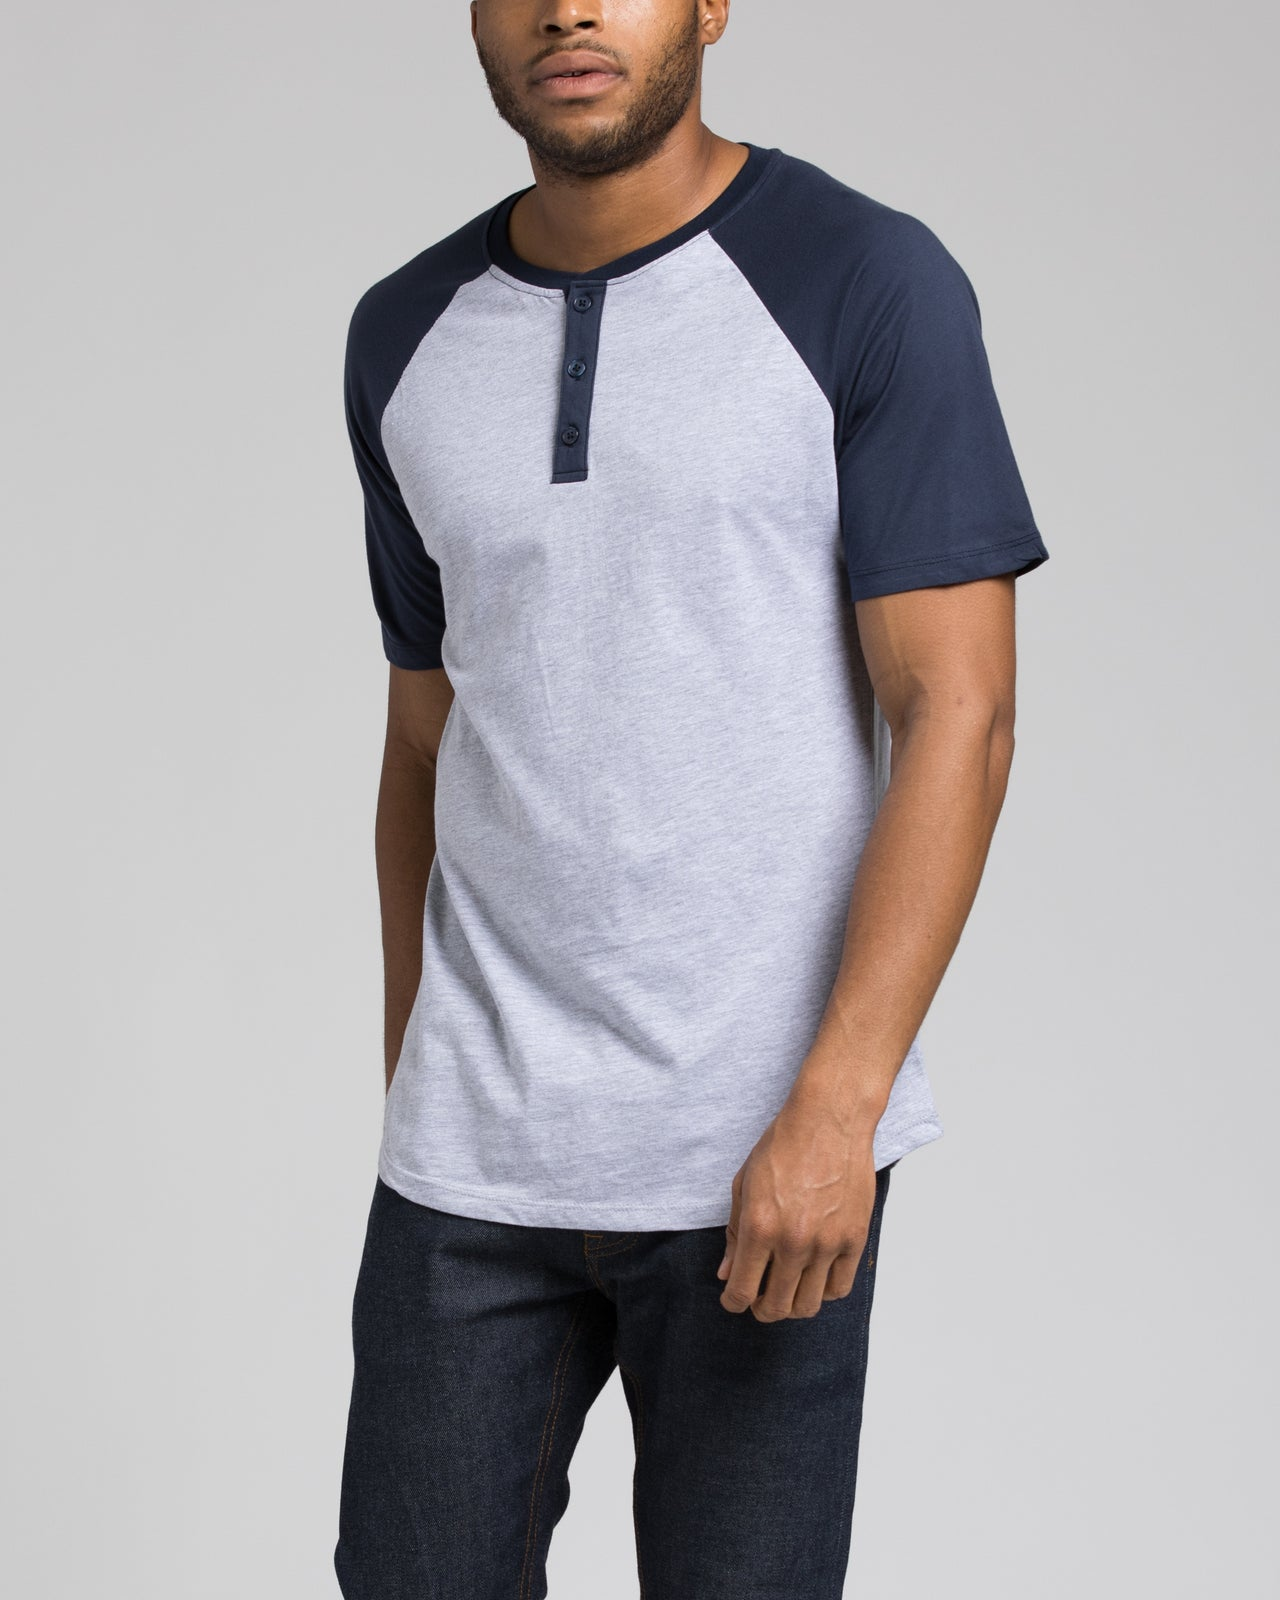 Short Sleeve Henley - Color: Navy/Heather Grey | Gray